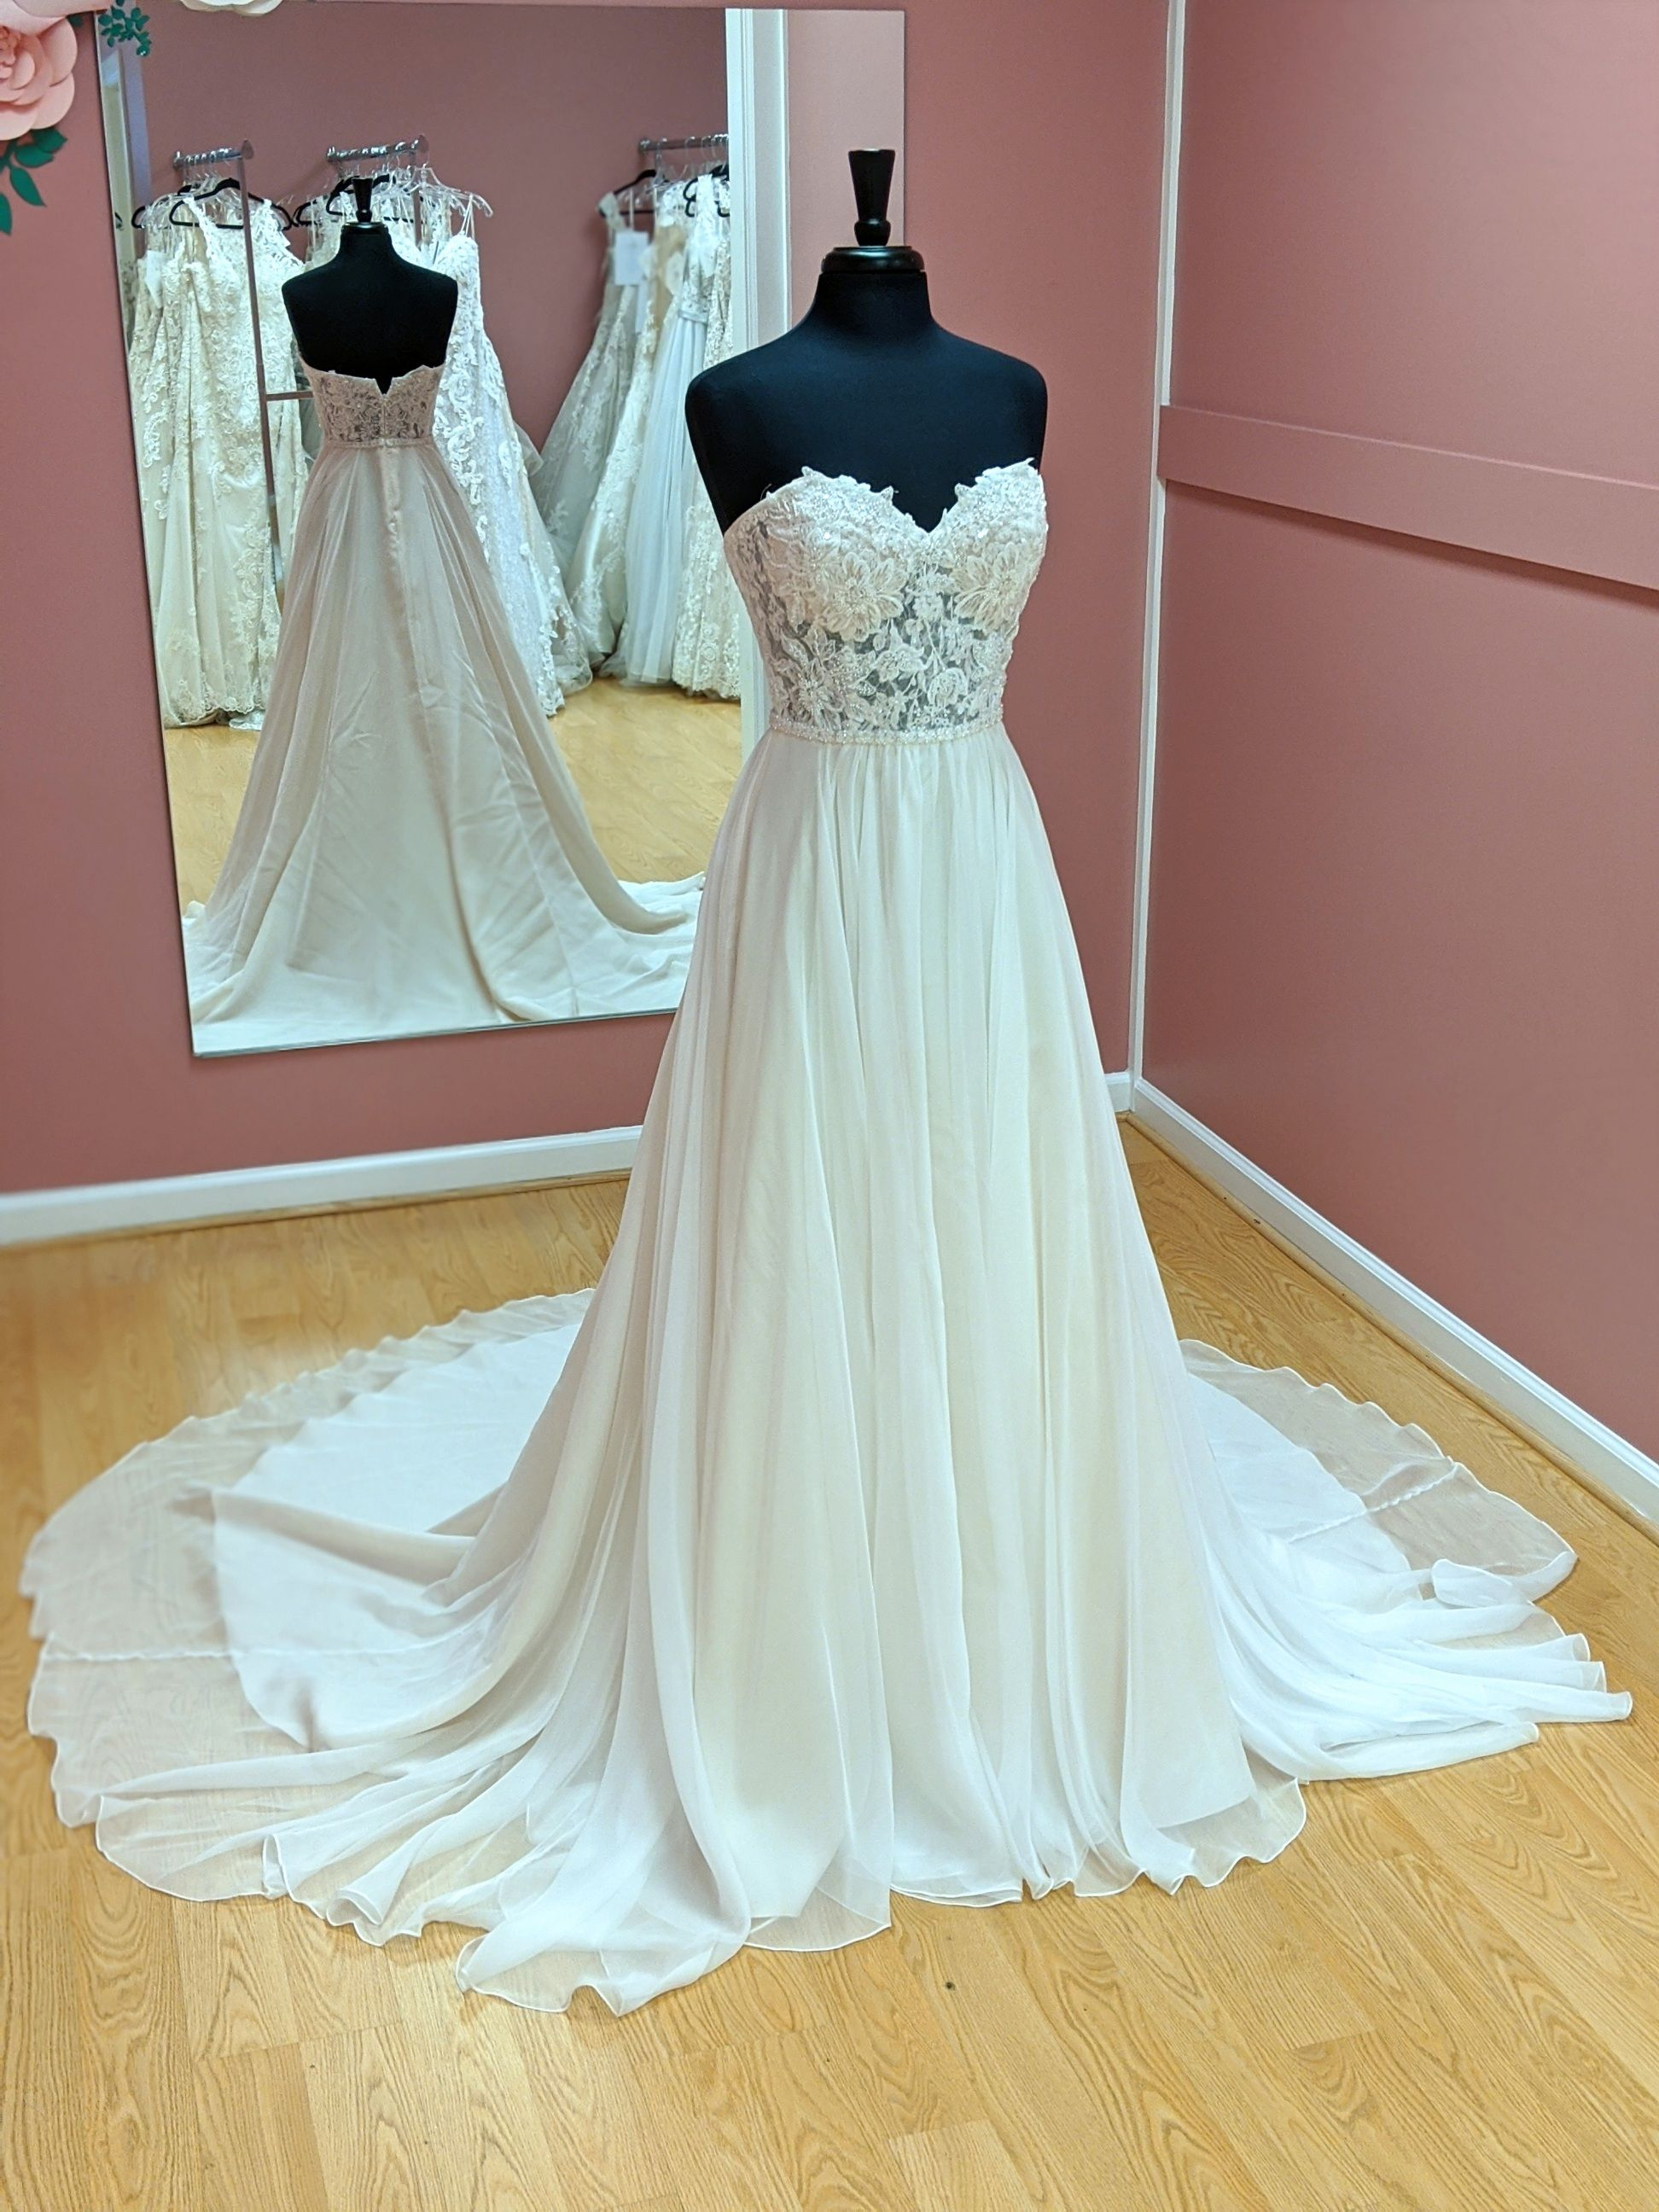 Size 10 In 2020 Most Beautiful Dresses Wedding Dress Shopping Bride,Mother Of The Groom Beach Wedding Dress